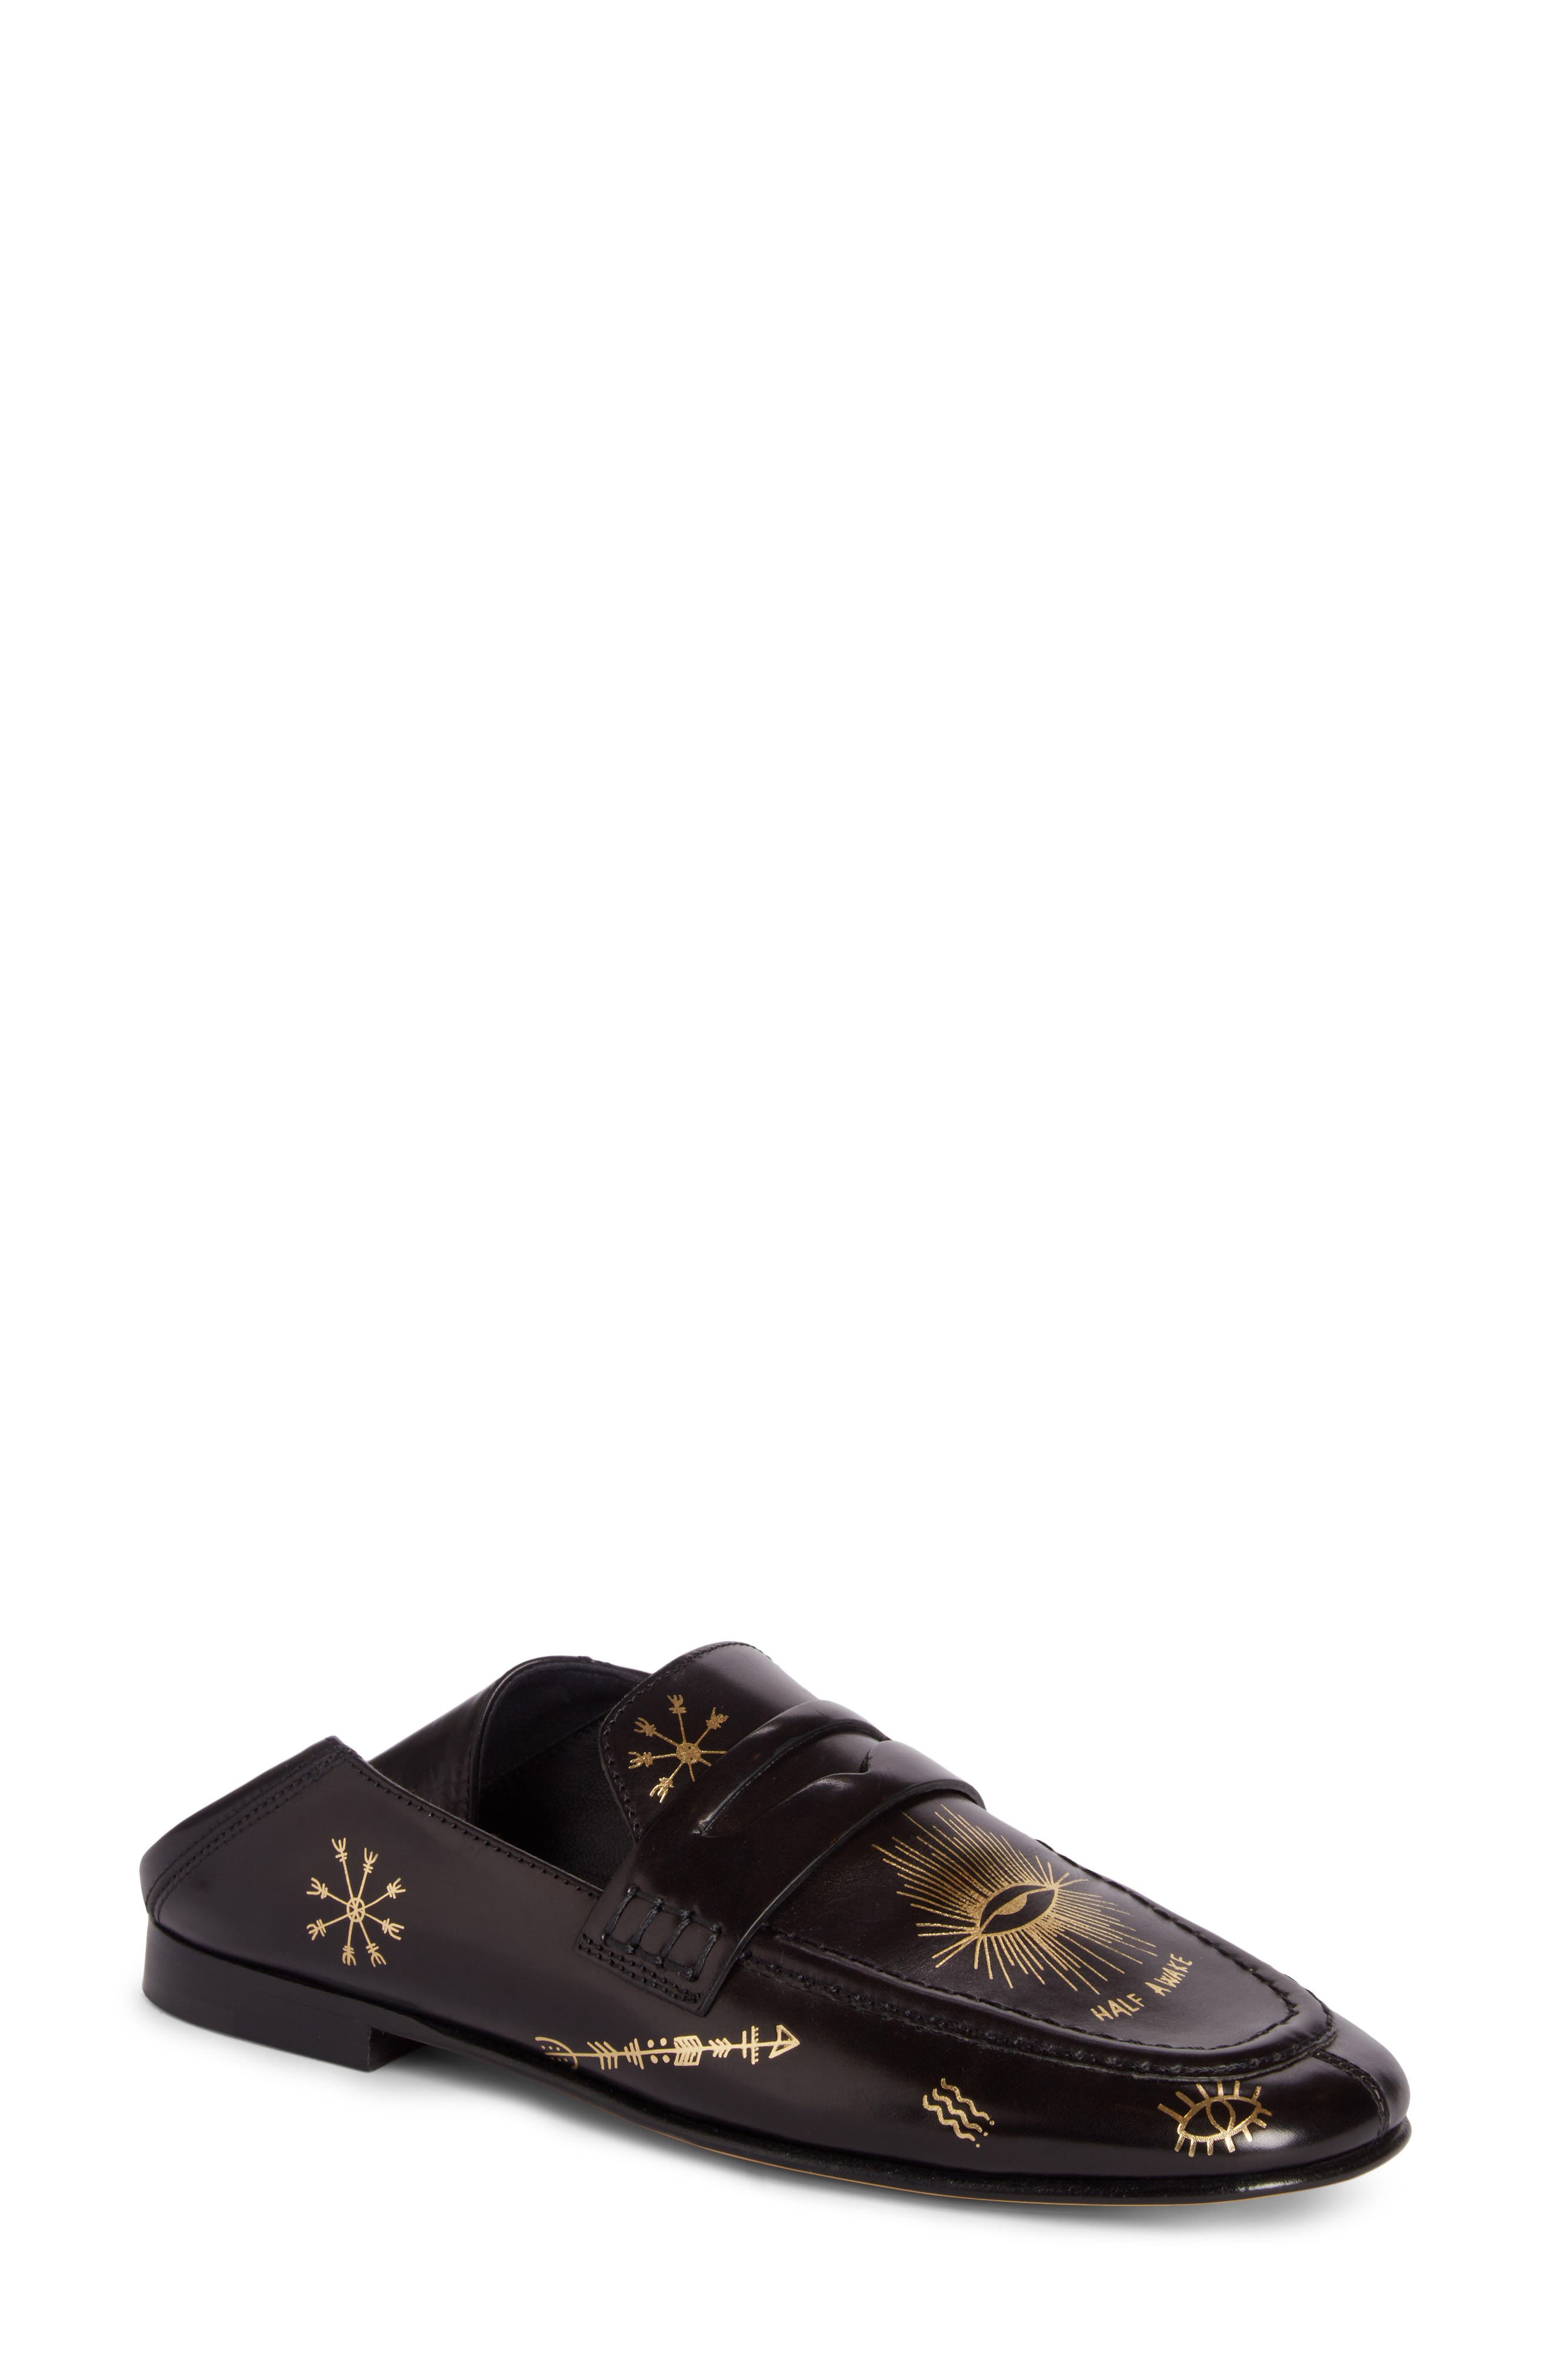 Alternate Image 1 Selected - Isabel Marant Fezzy Print Convertible Loafer (Women)